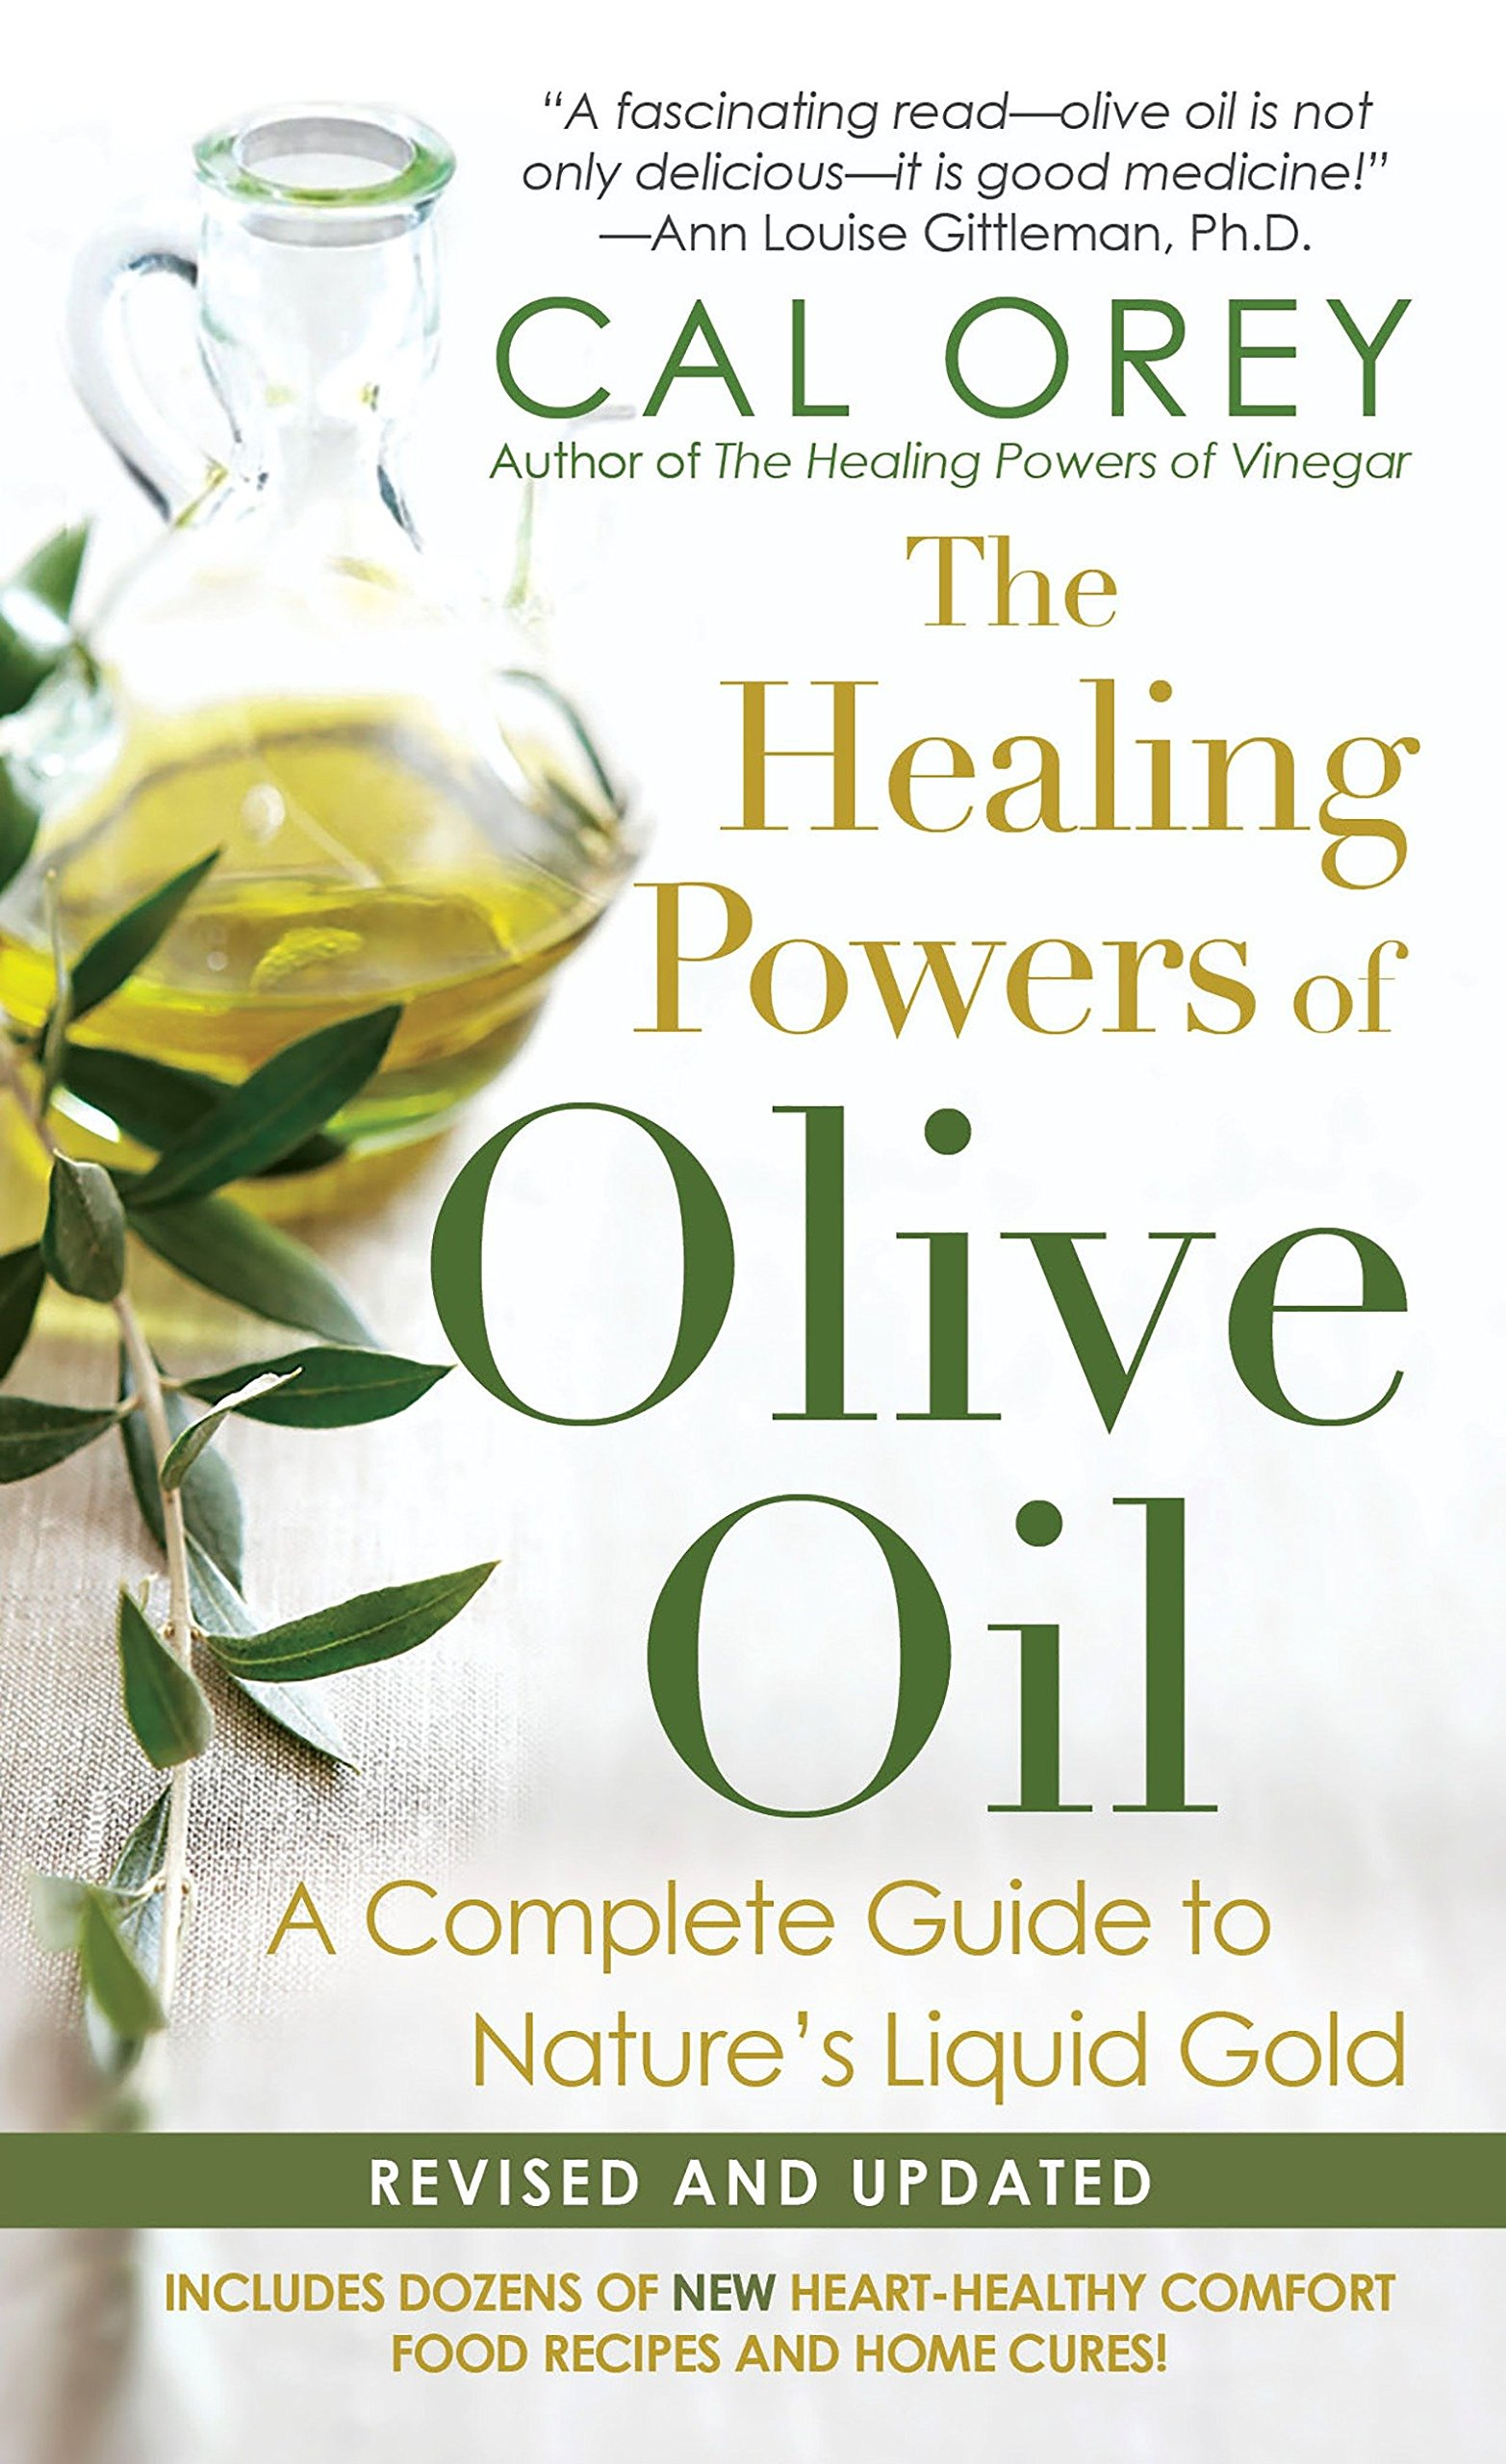 Download The Healing Powers of Olive Oil: A Complete Guide To Nature's Liquid Gold PDF